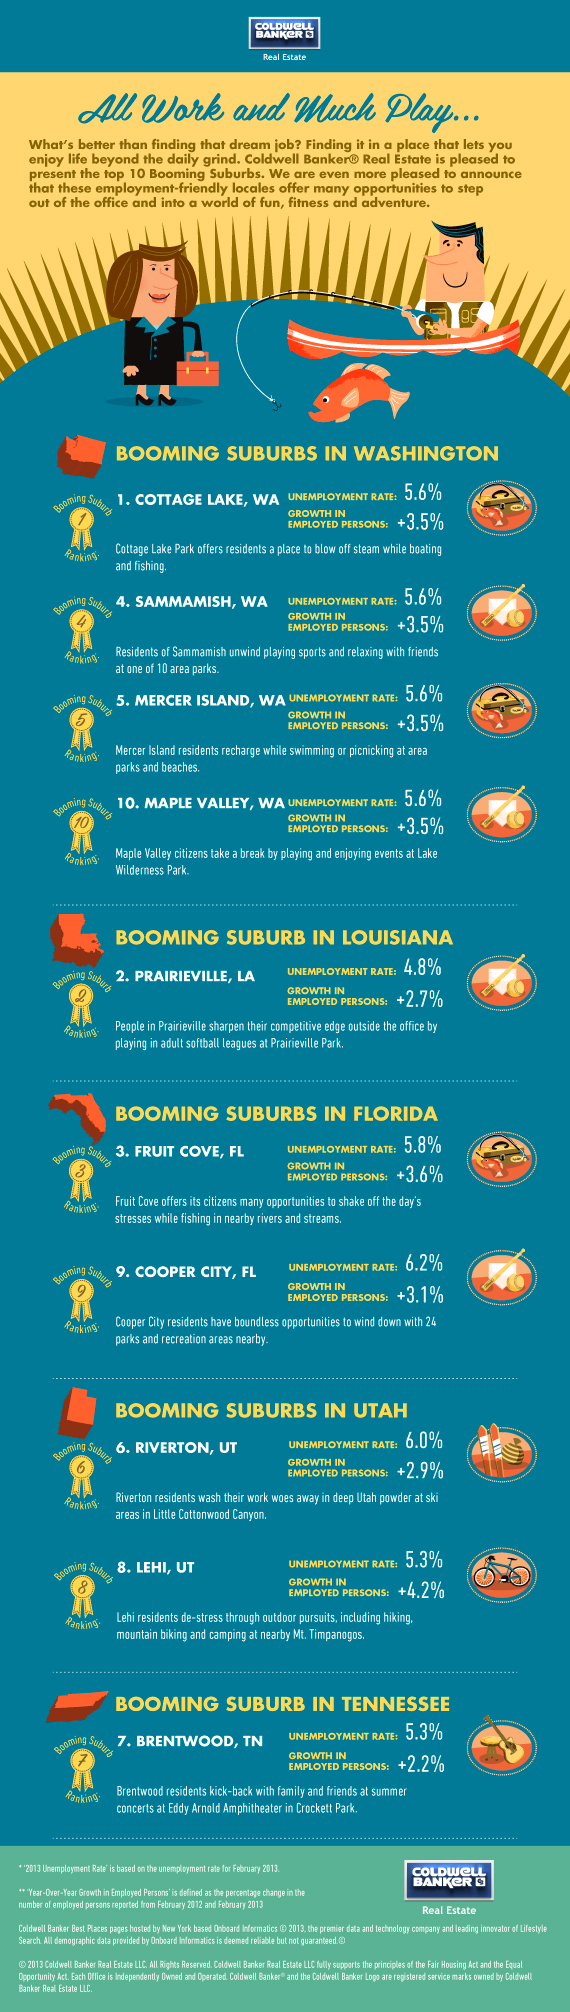 Booming Suburbs Graphic 570px Best Places to Live: Top Booming Suburbs in America